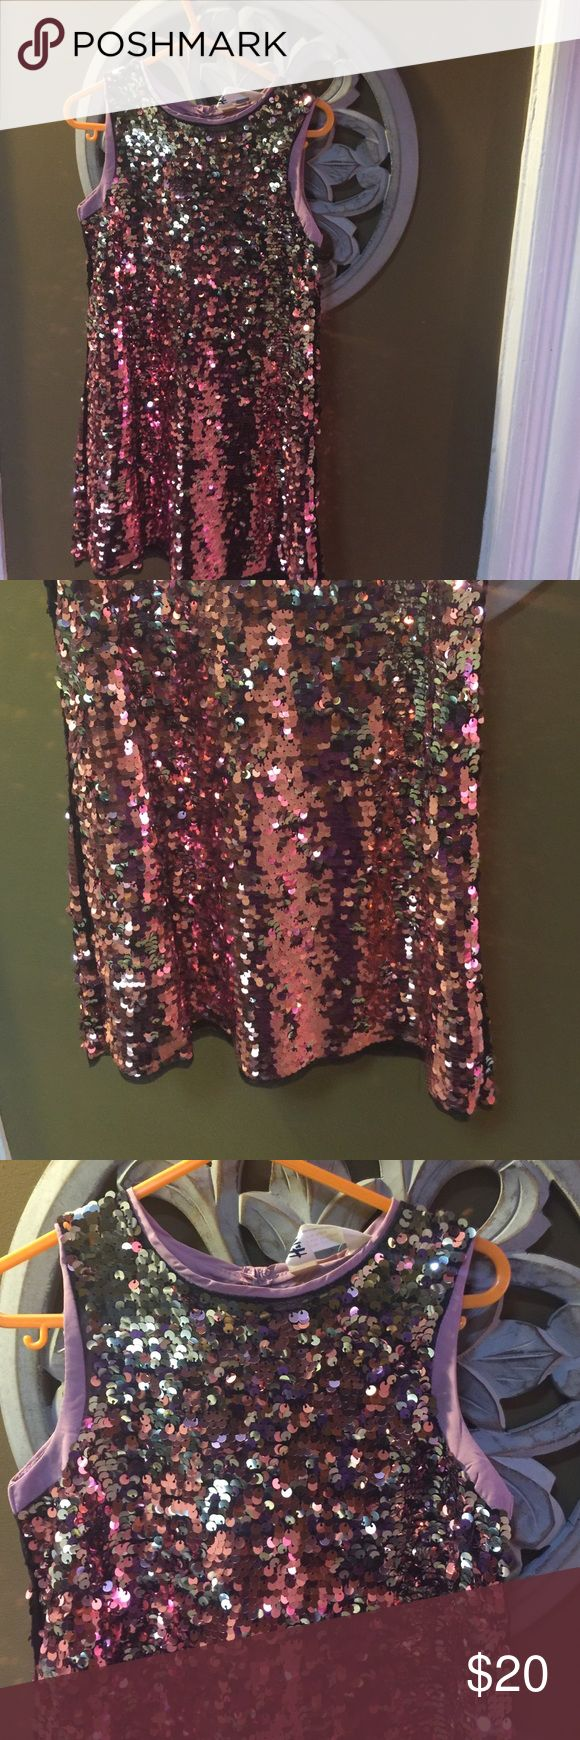 h m maxi dress sale used tires